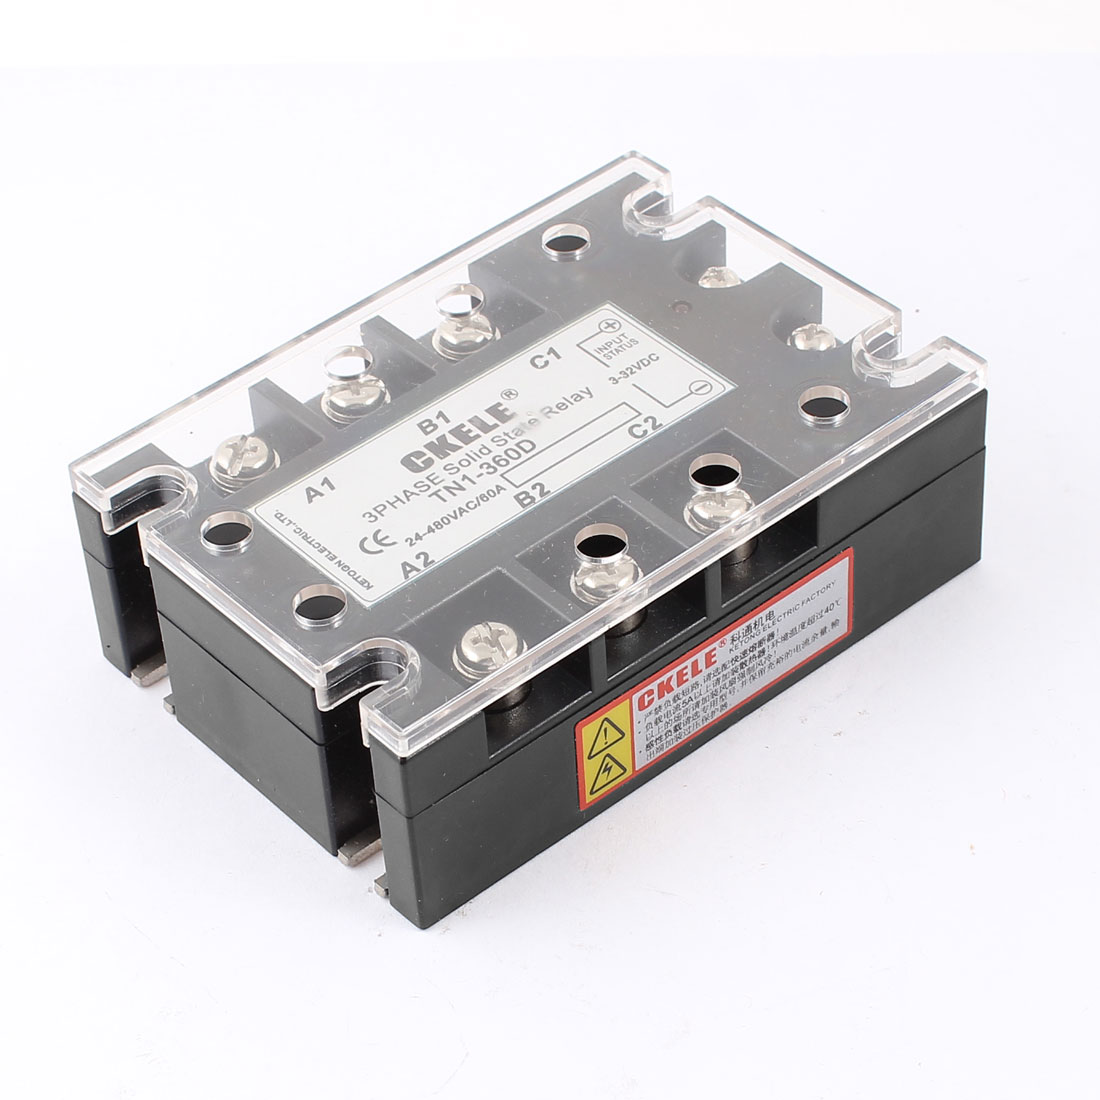 TN1-360D 6 Terminals 3 Phase Indicator Light Solid State Relay DC3-32V AC24-480V 60A